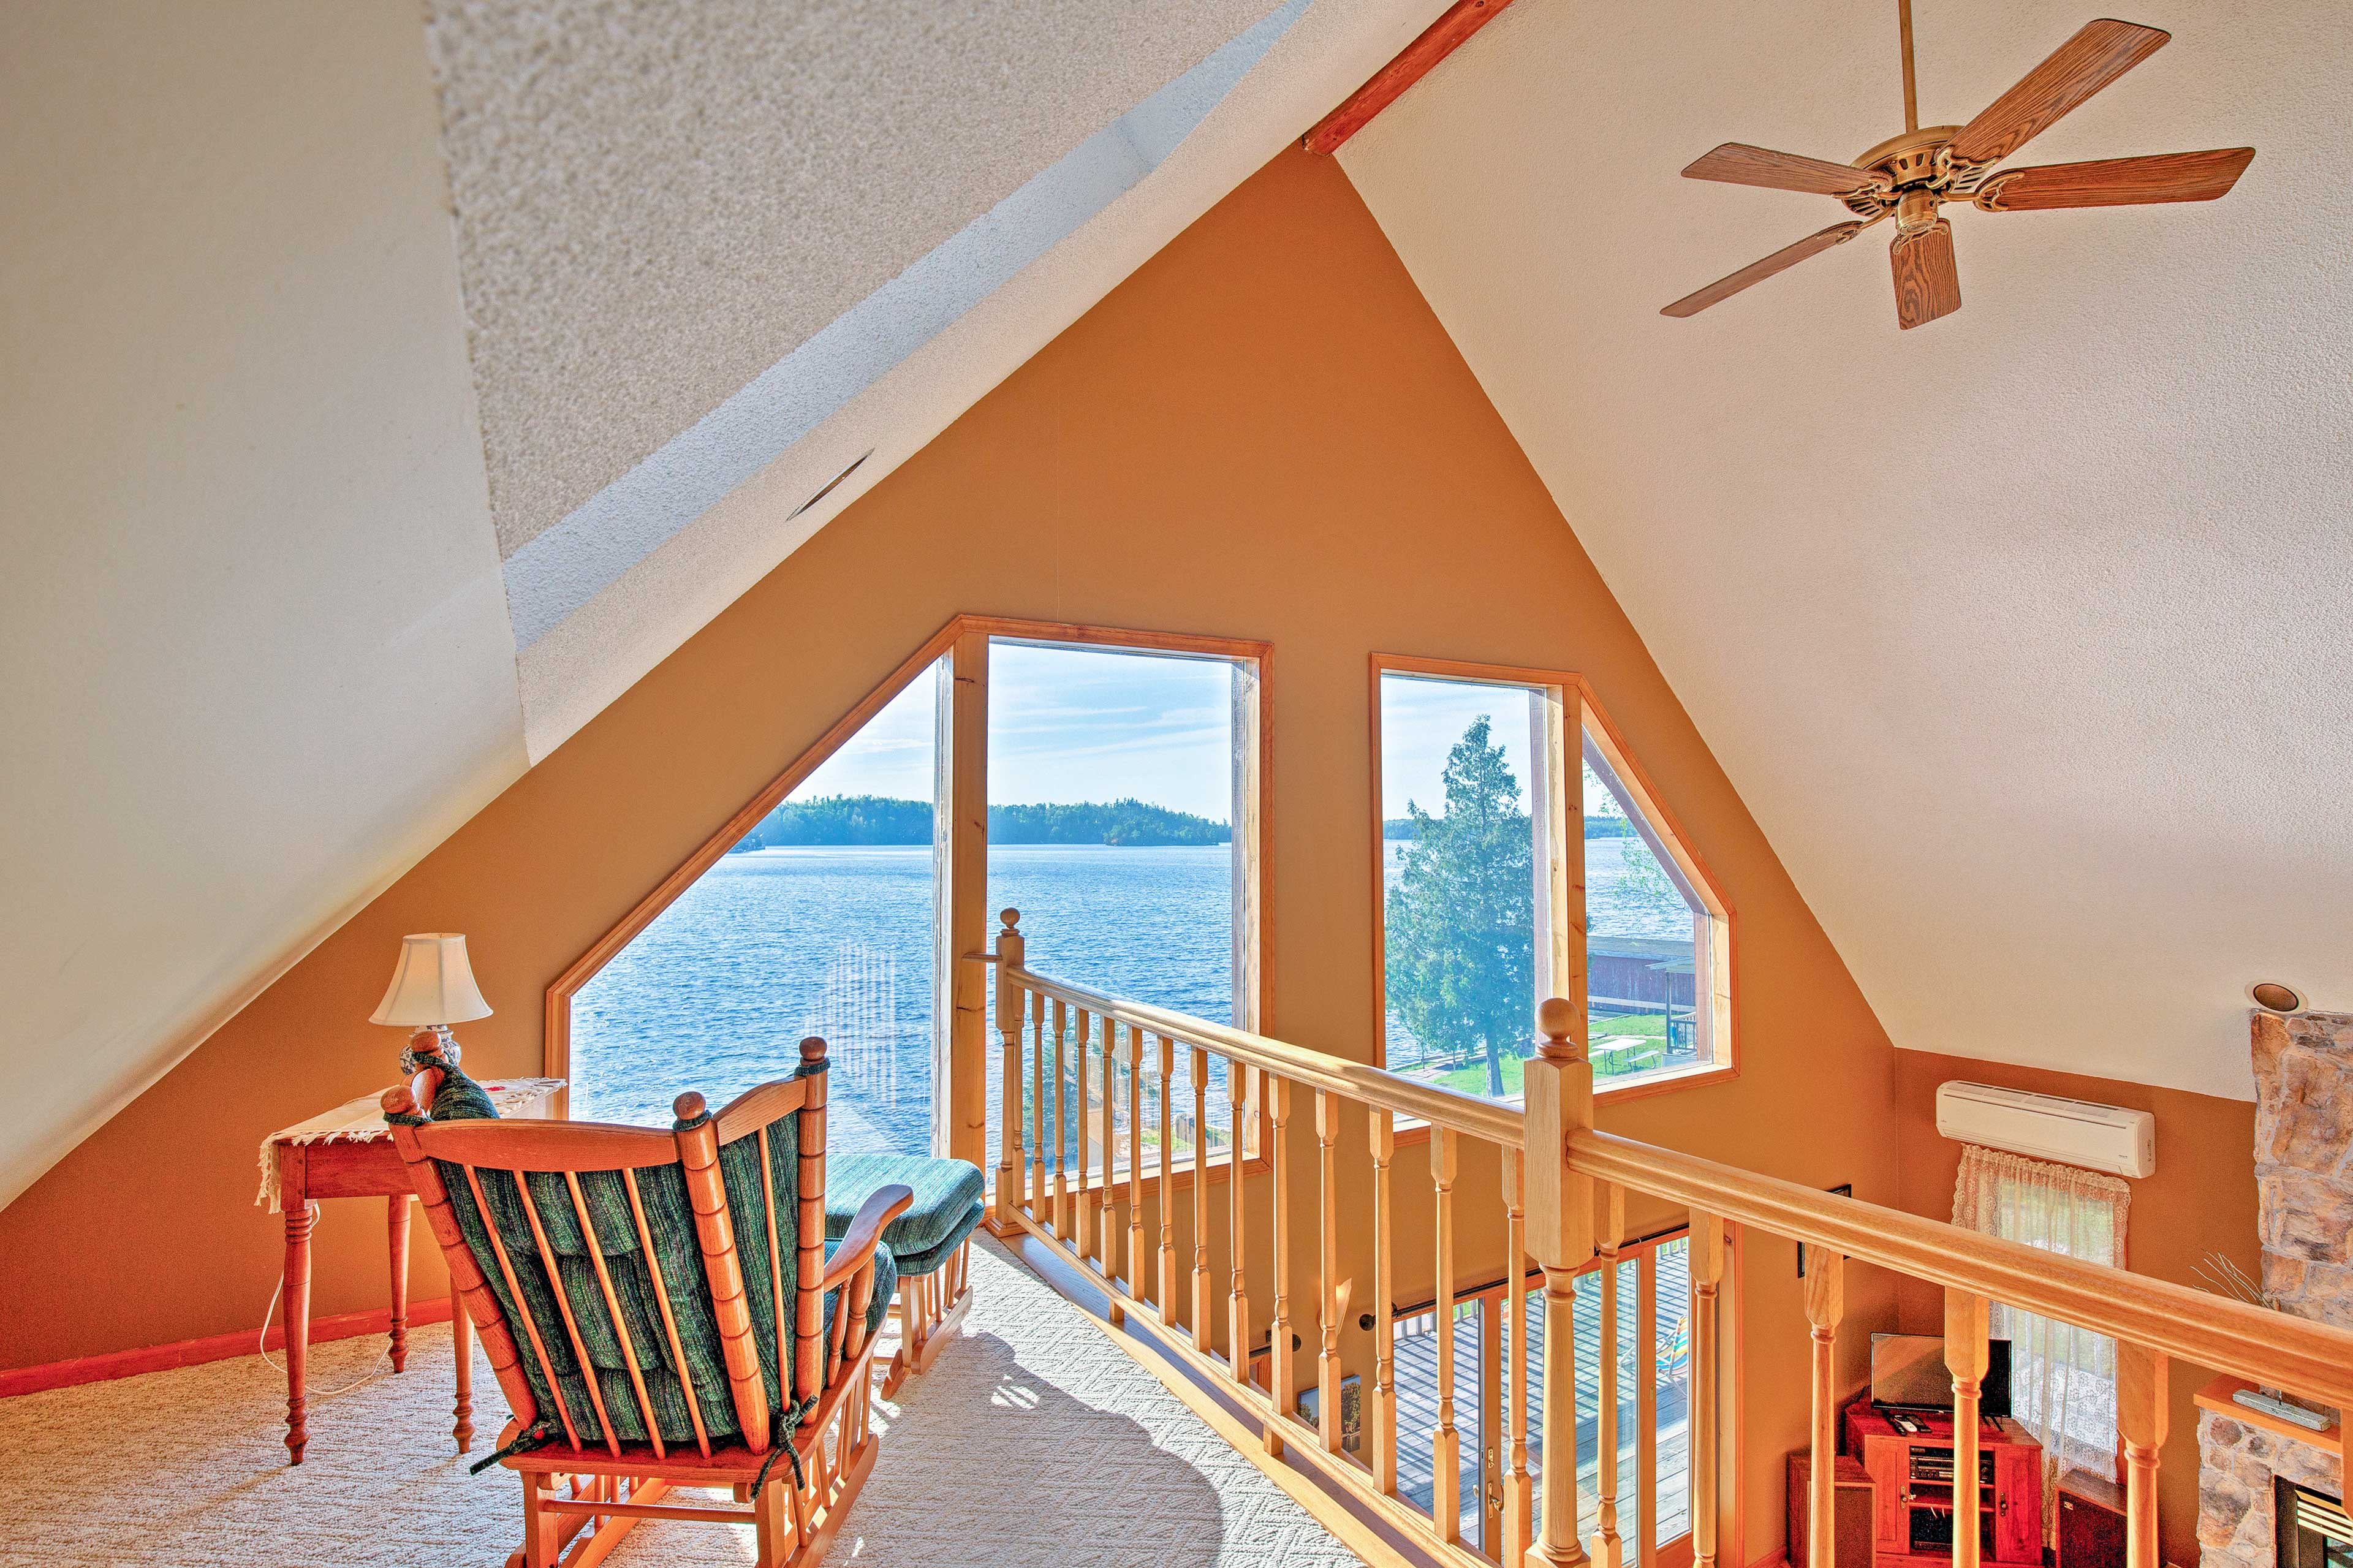 Catch up on your favorite novel in the loft with picturesque views.